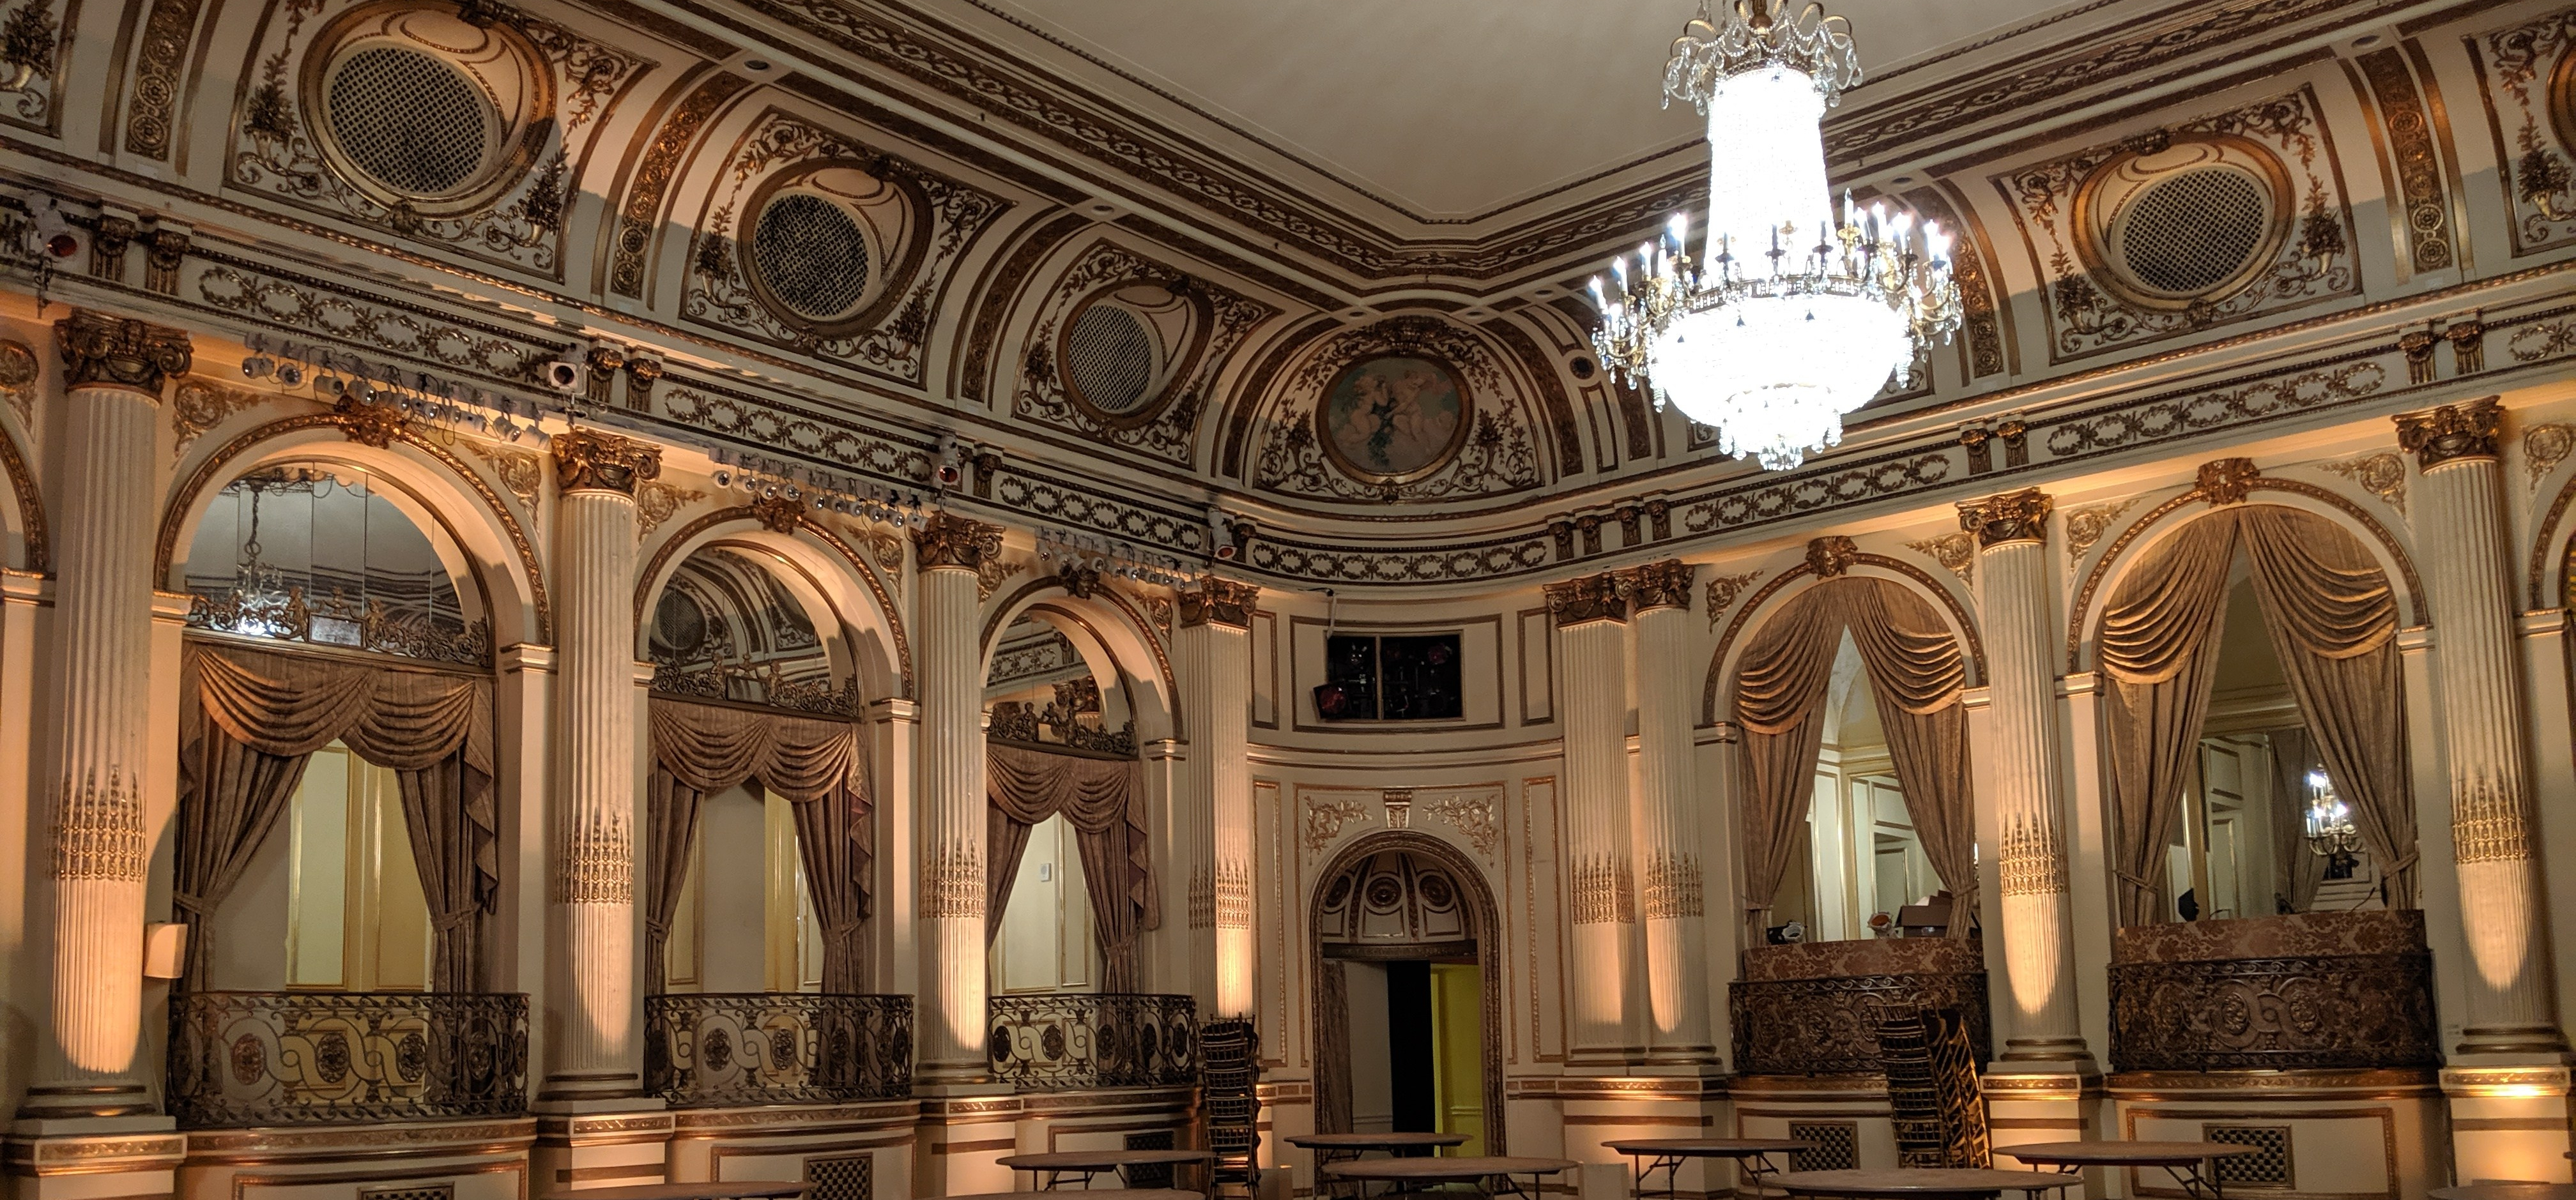 The famed ballroom at the Plaza